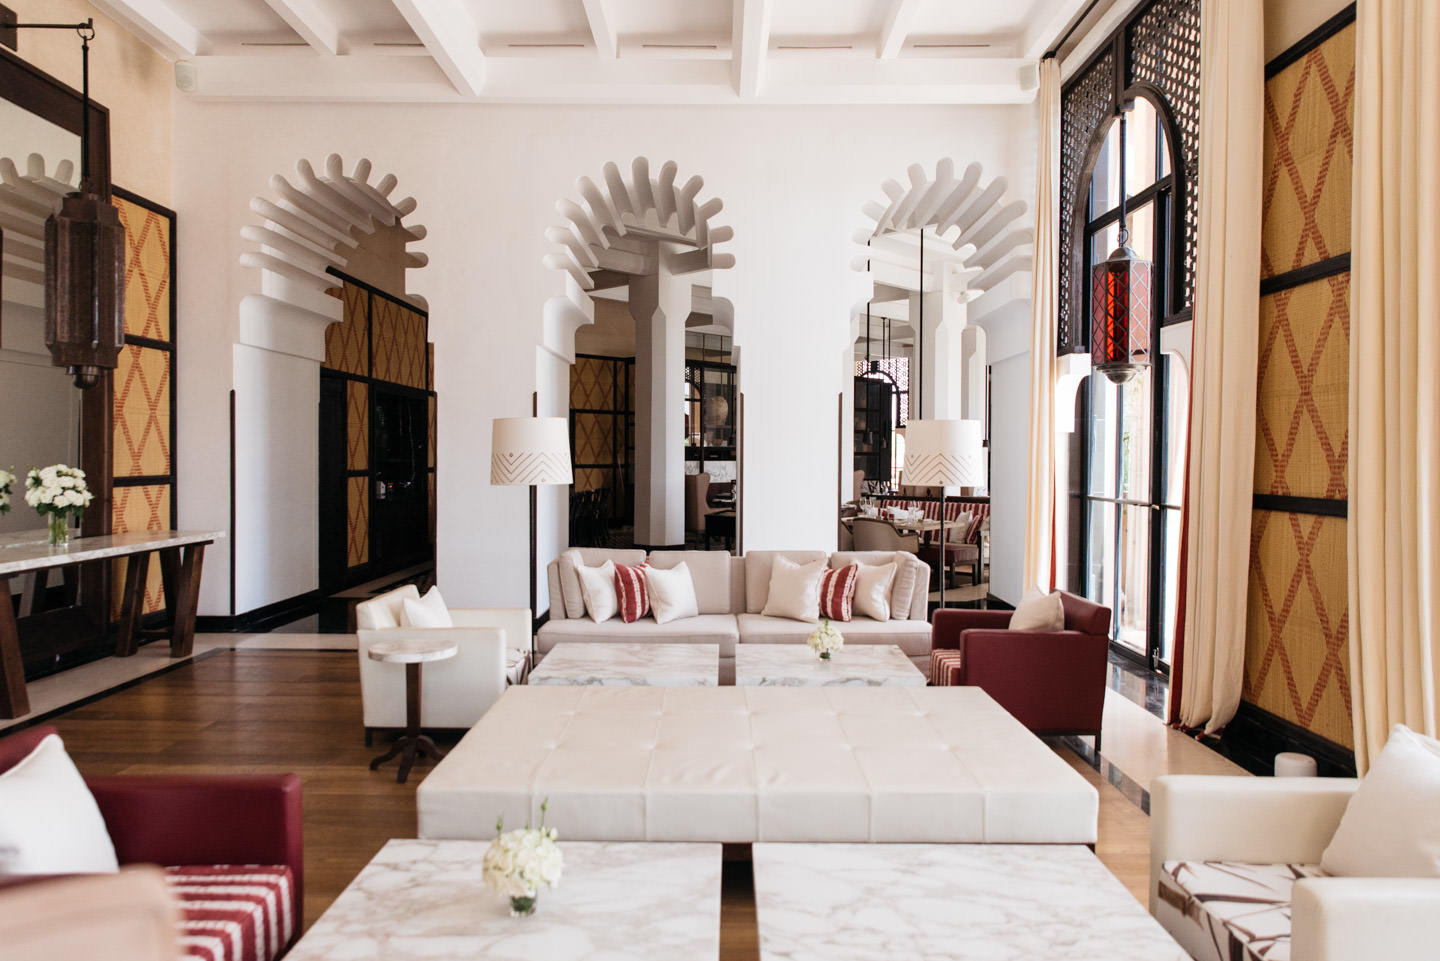 Blog-Mode-And-The-City-Lifestyle-Le-Madarin-Oriental-Marrakech-8